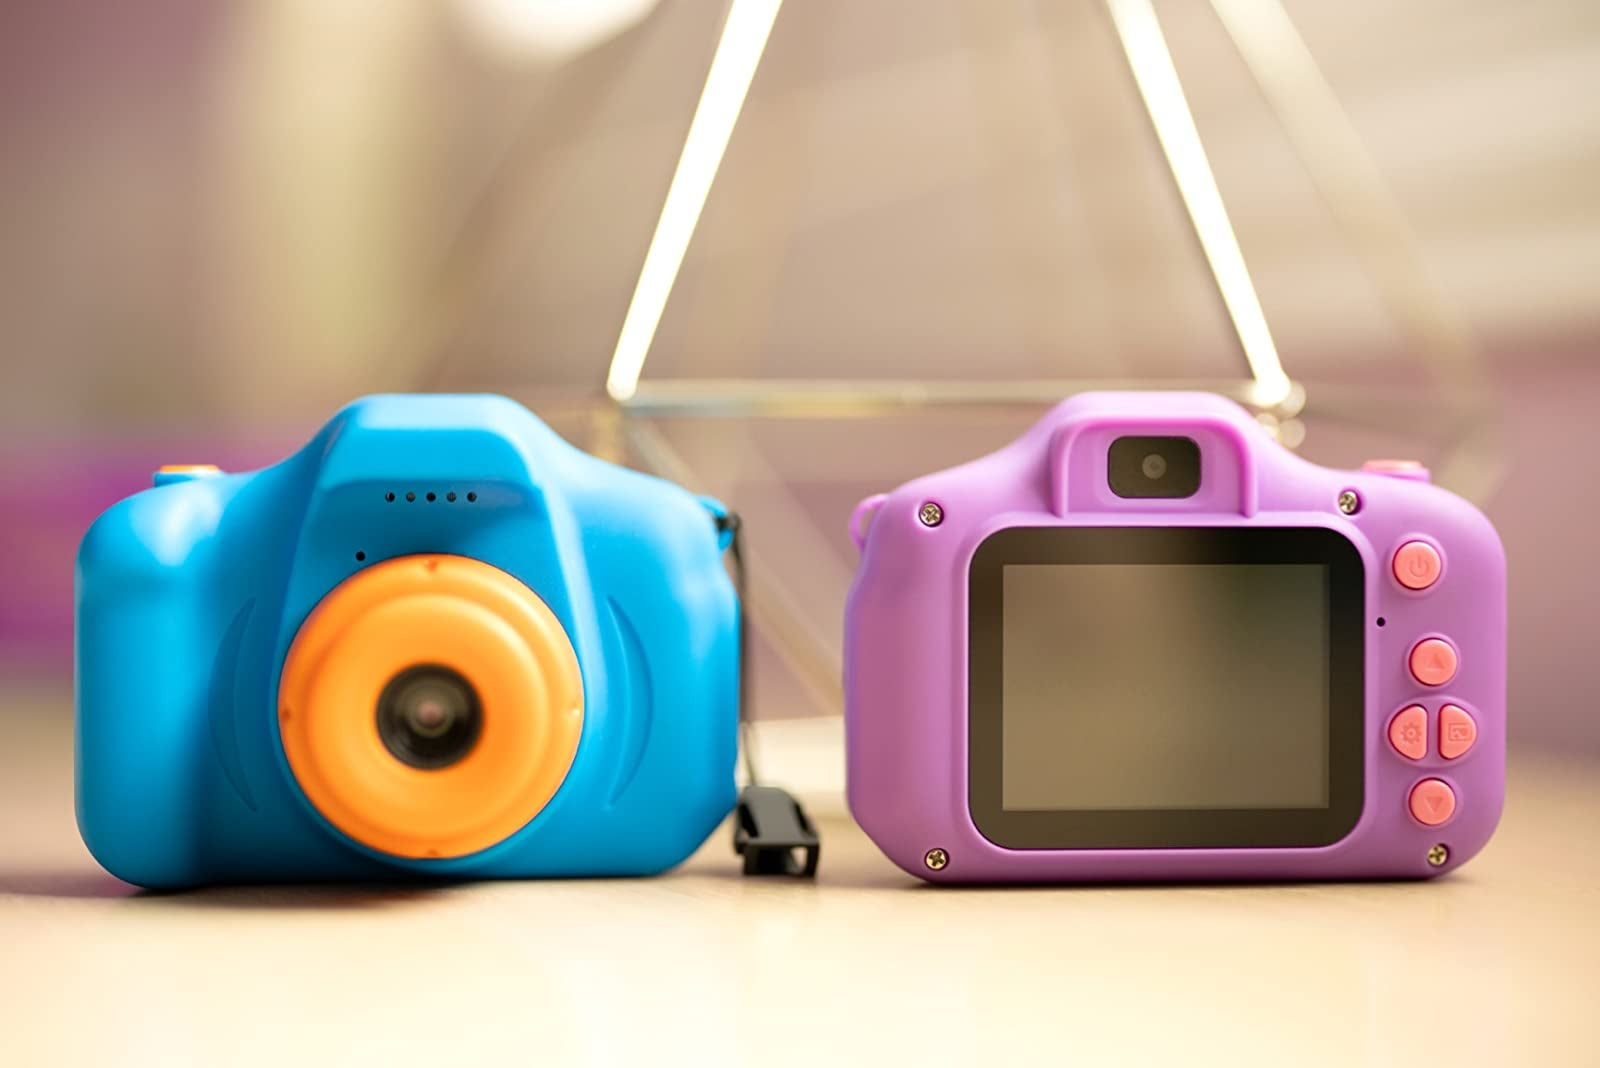 Reviewer's photo of toy cameras in blue and purple